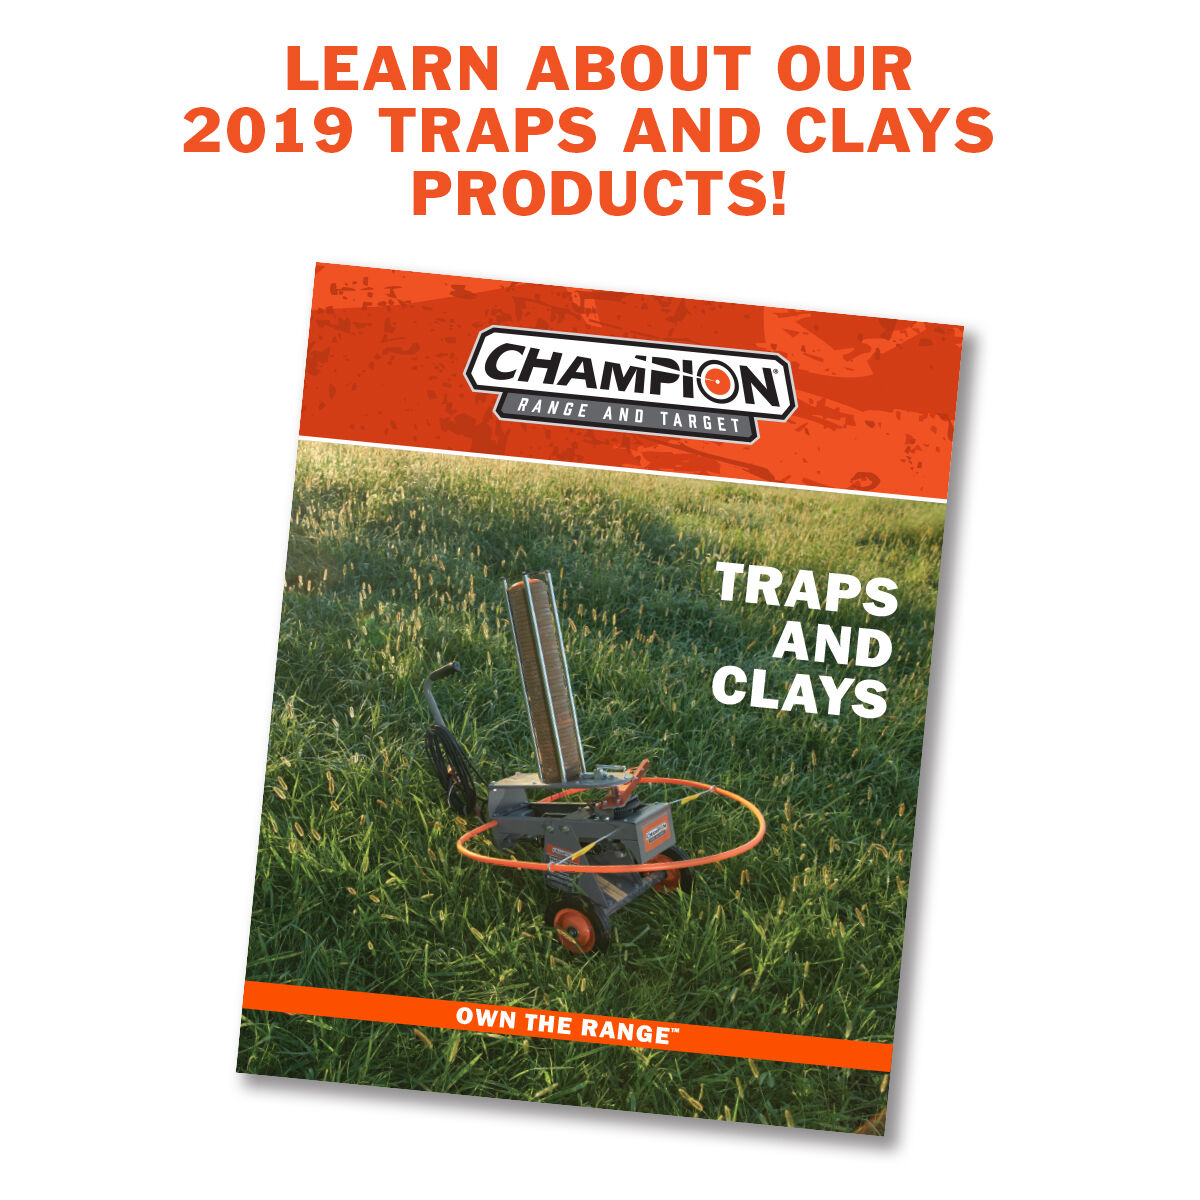 Traps and Clays Brochure